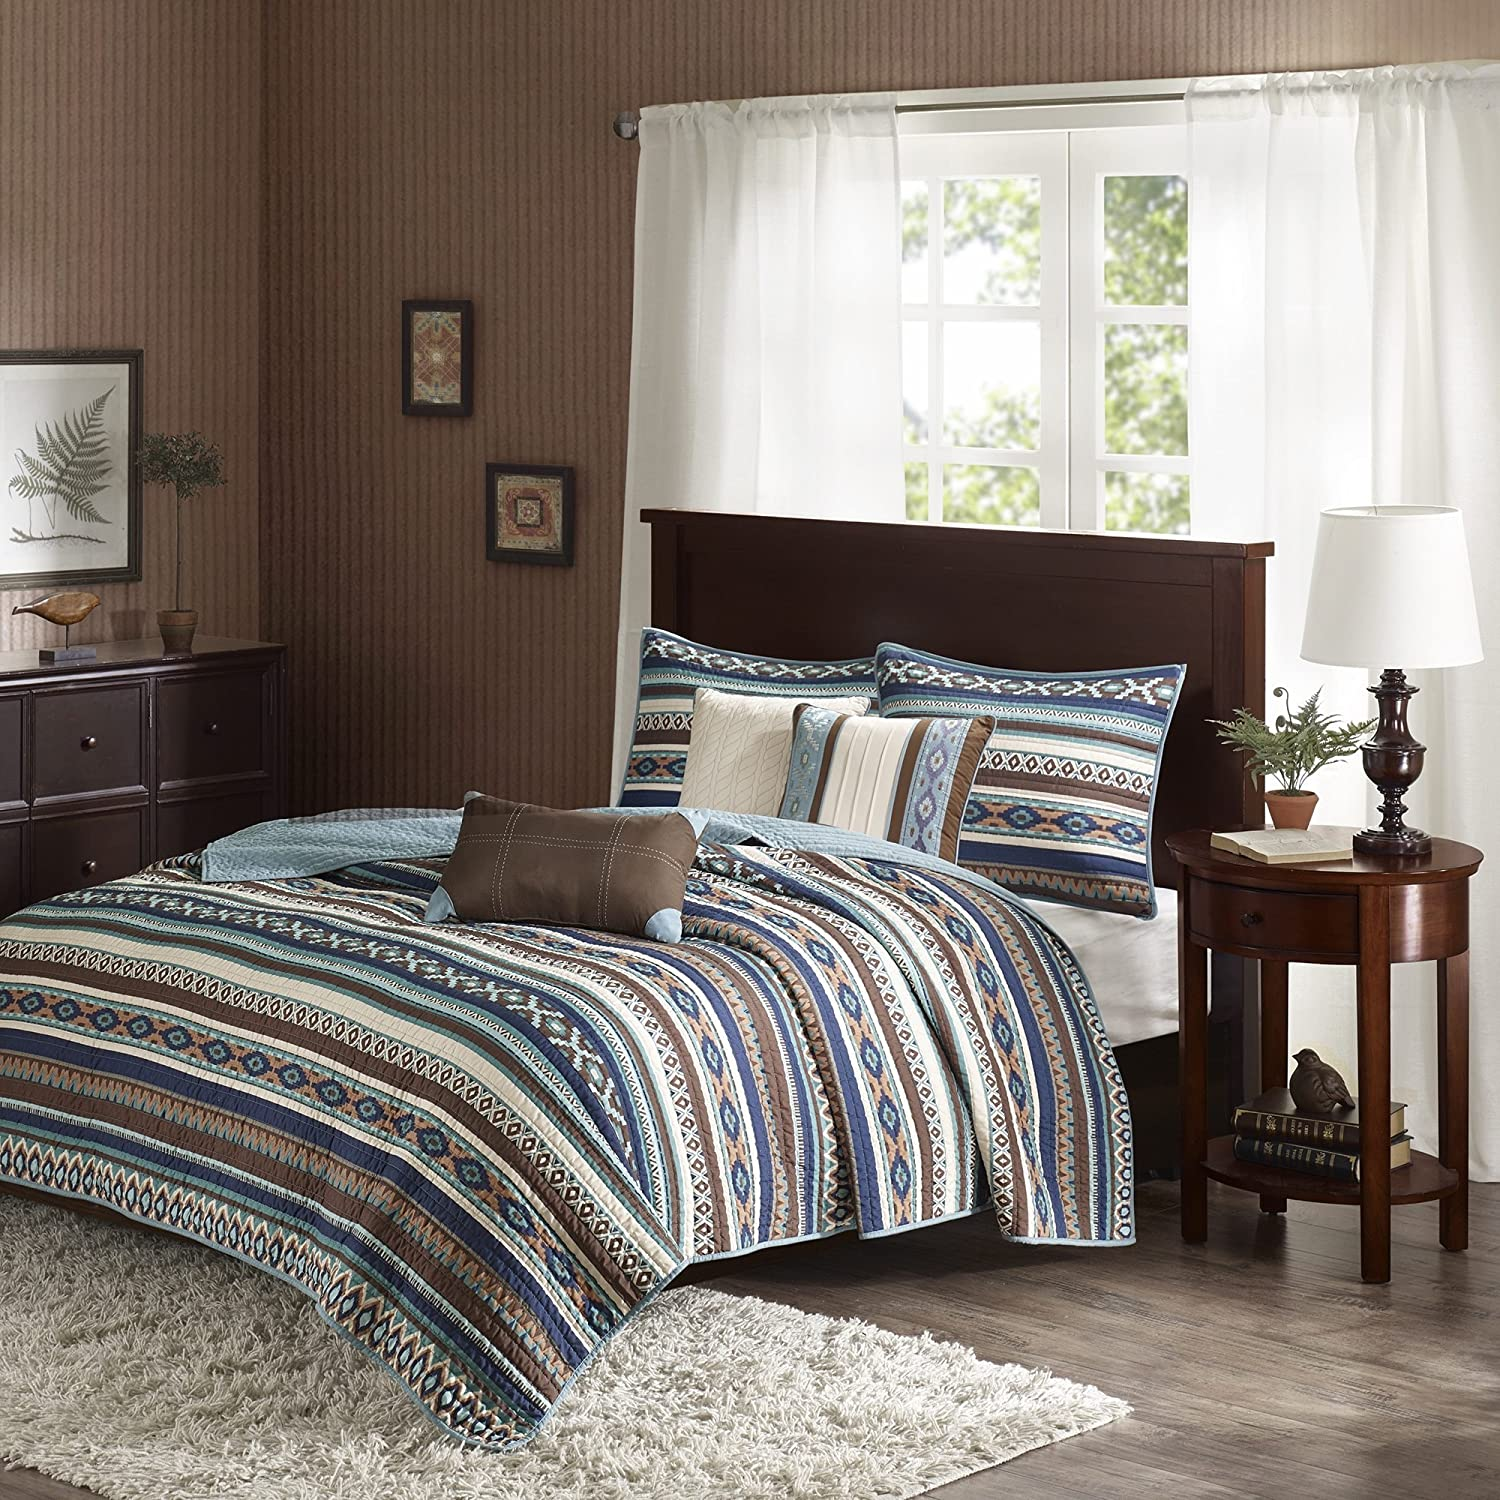 bedding quilts comforters red coverlets dillards comforter southwestern zi home c